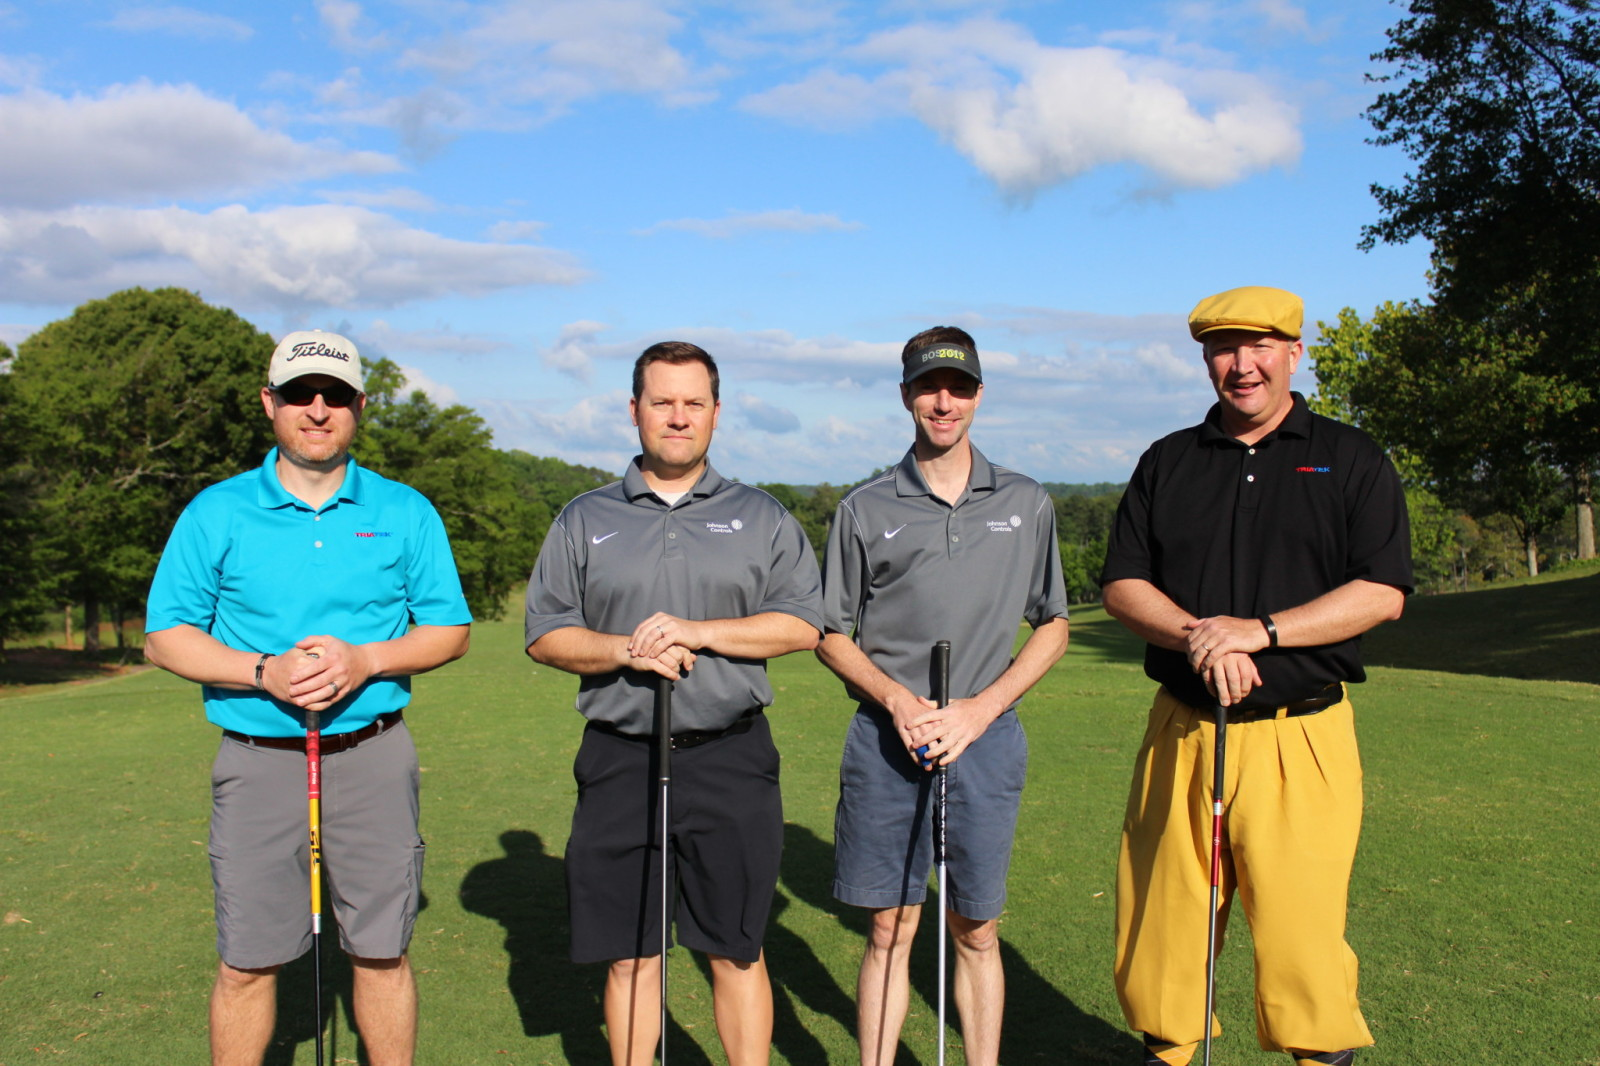 Triatek's golf foursome